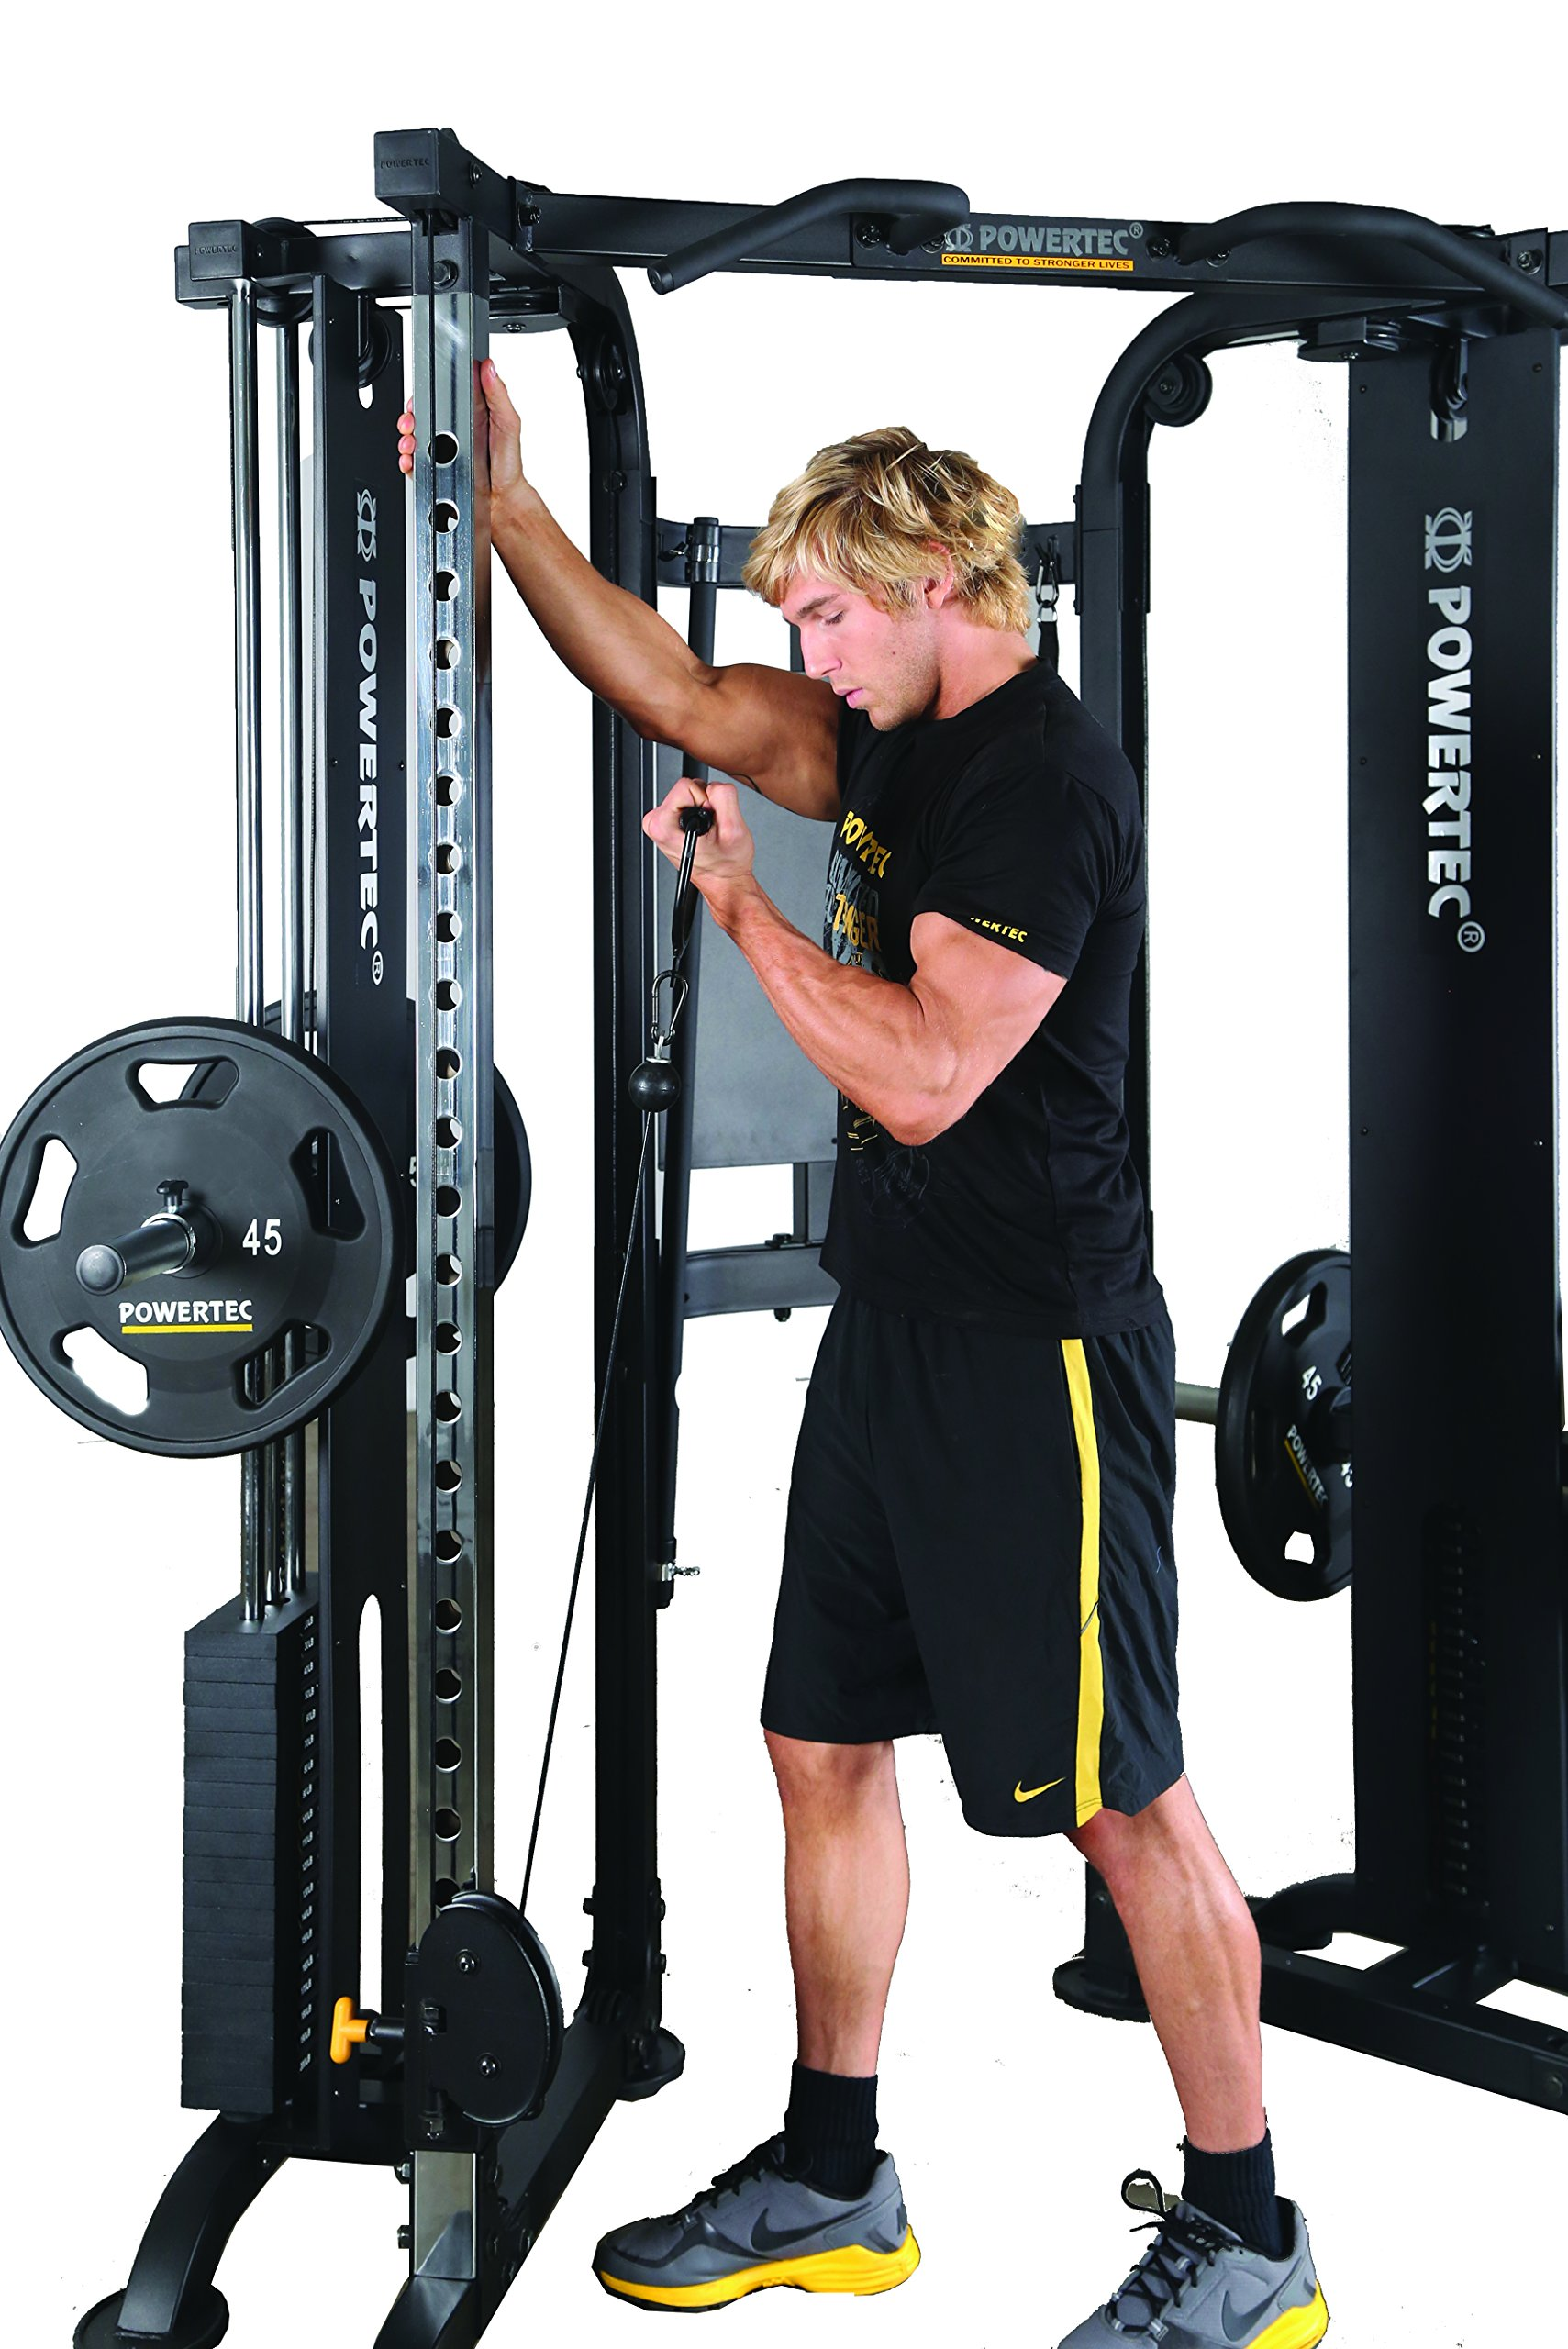 Powertec Fitness Functional Trainer Deluxe, Black by Powertec Fitness